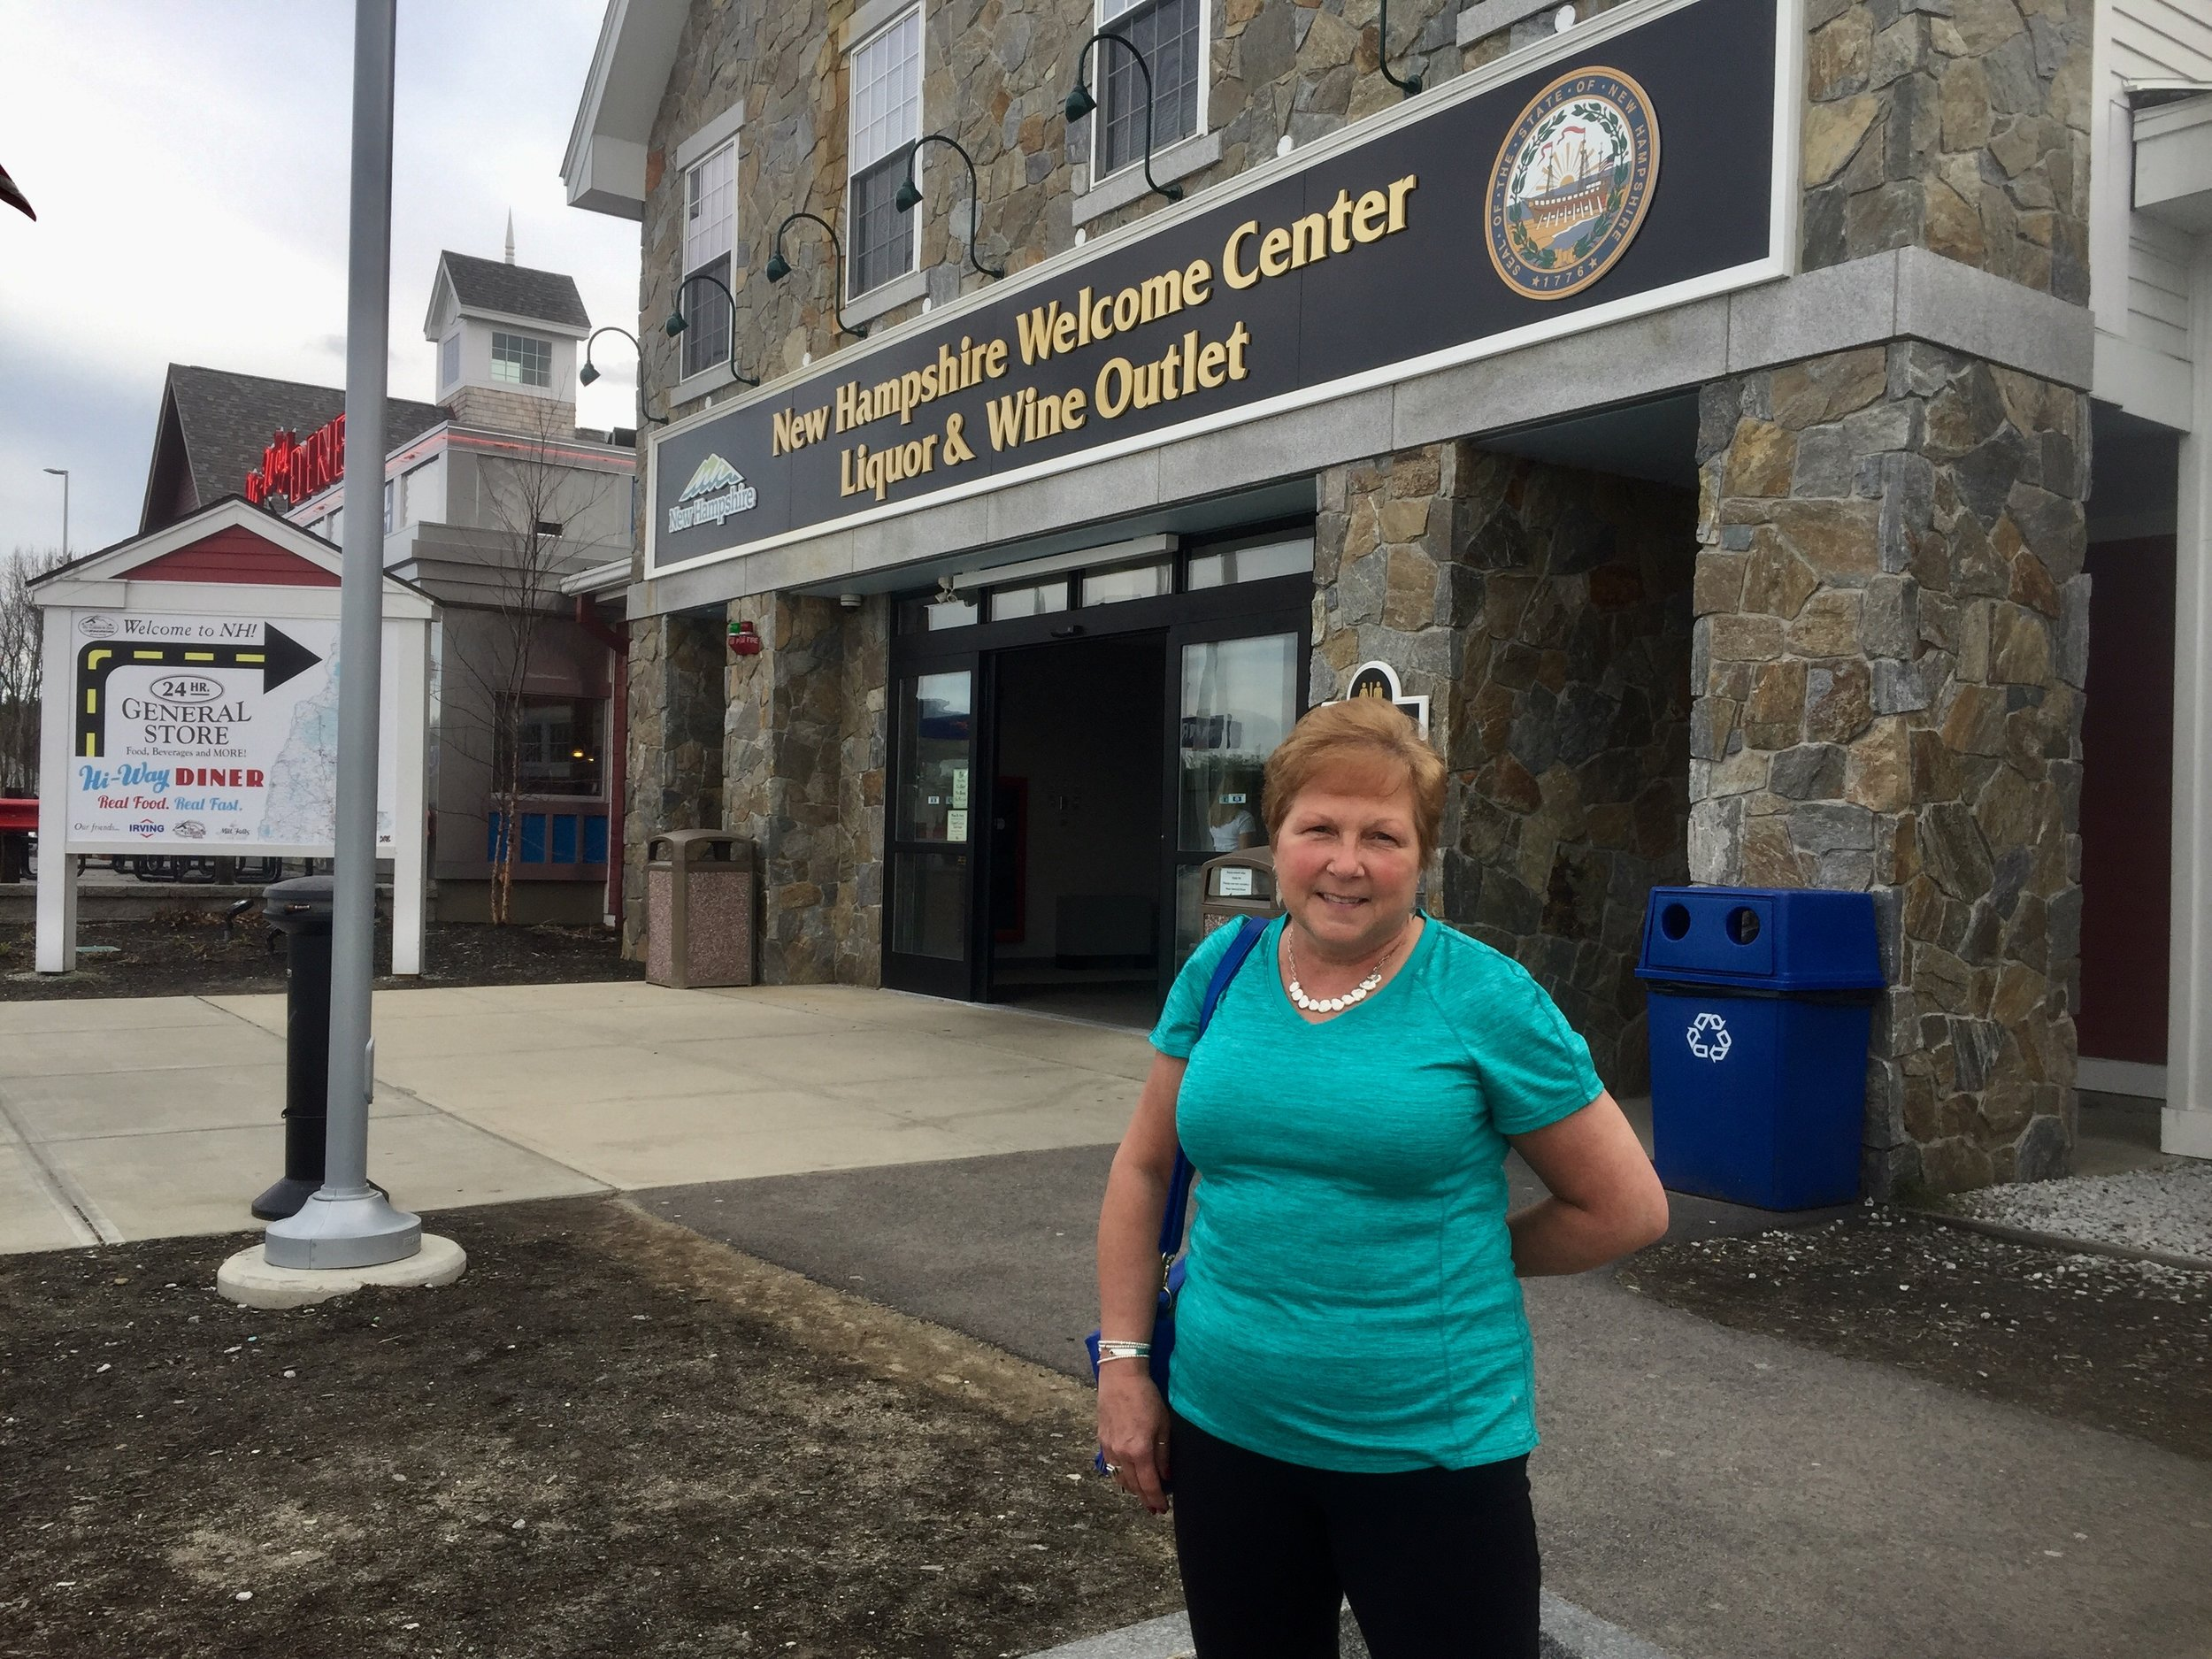 Loretta Bresette, 61, lives in Vermont but comes to N.H. often to buy liquor because of the low prices.   PAIGE SUTHERLAND/NHPR